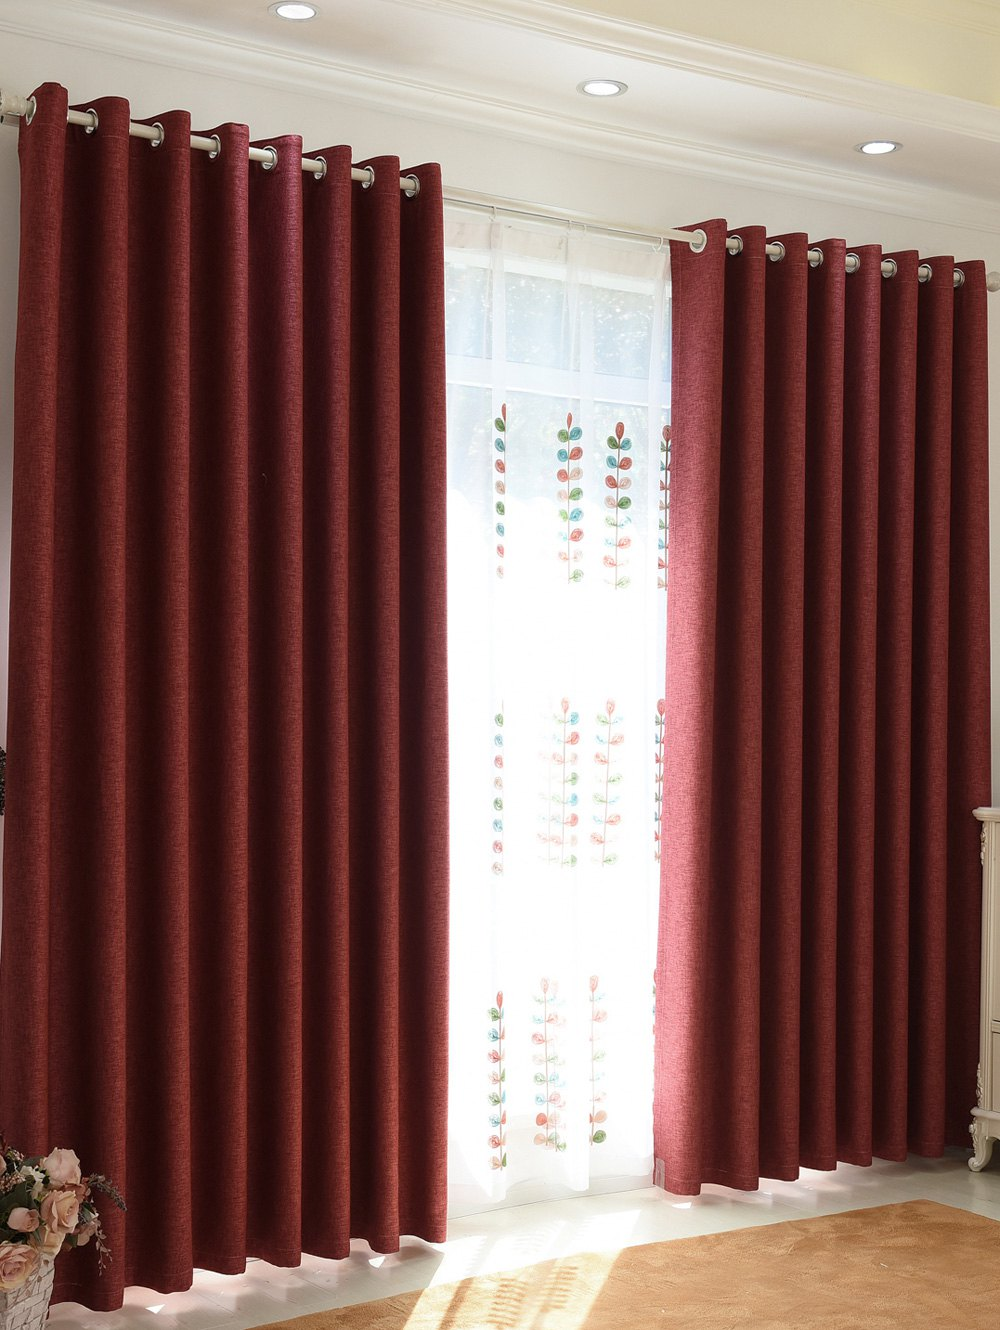 Home Decor Shading Blackout Perforated Window Curtain - Brique 100*250CM